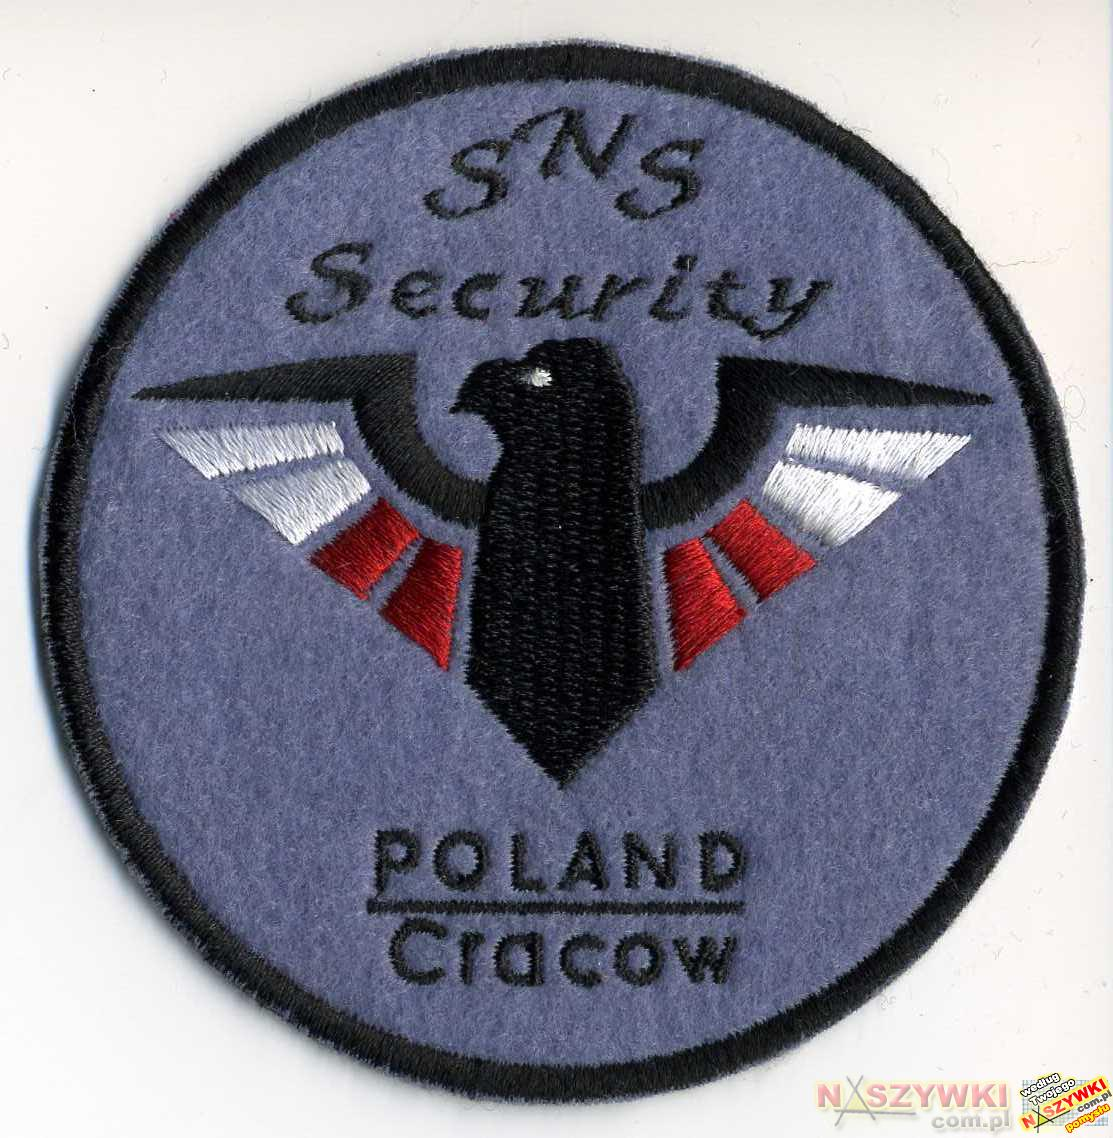 SNS Security